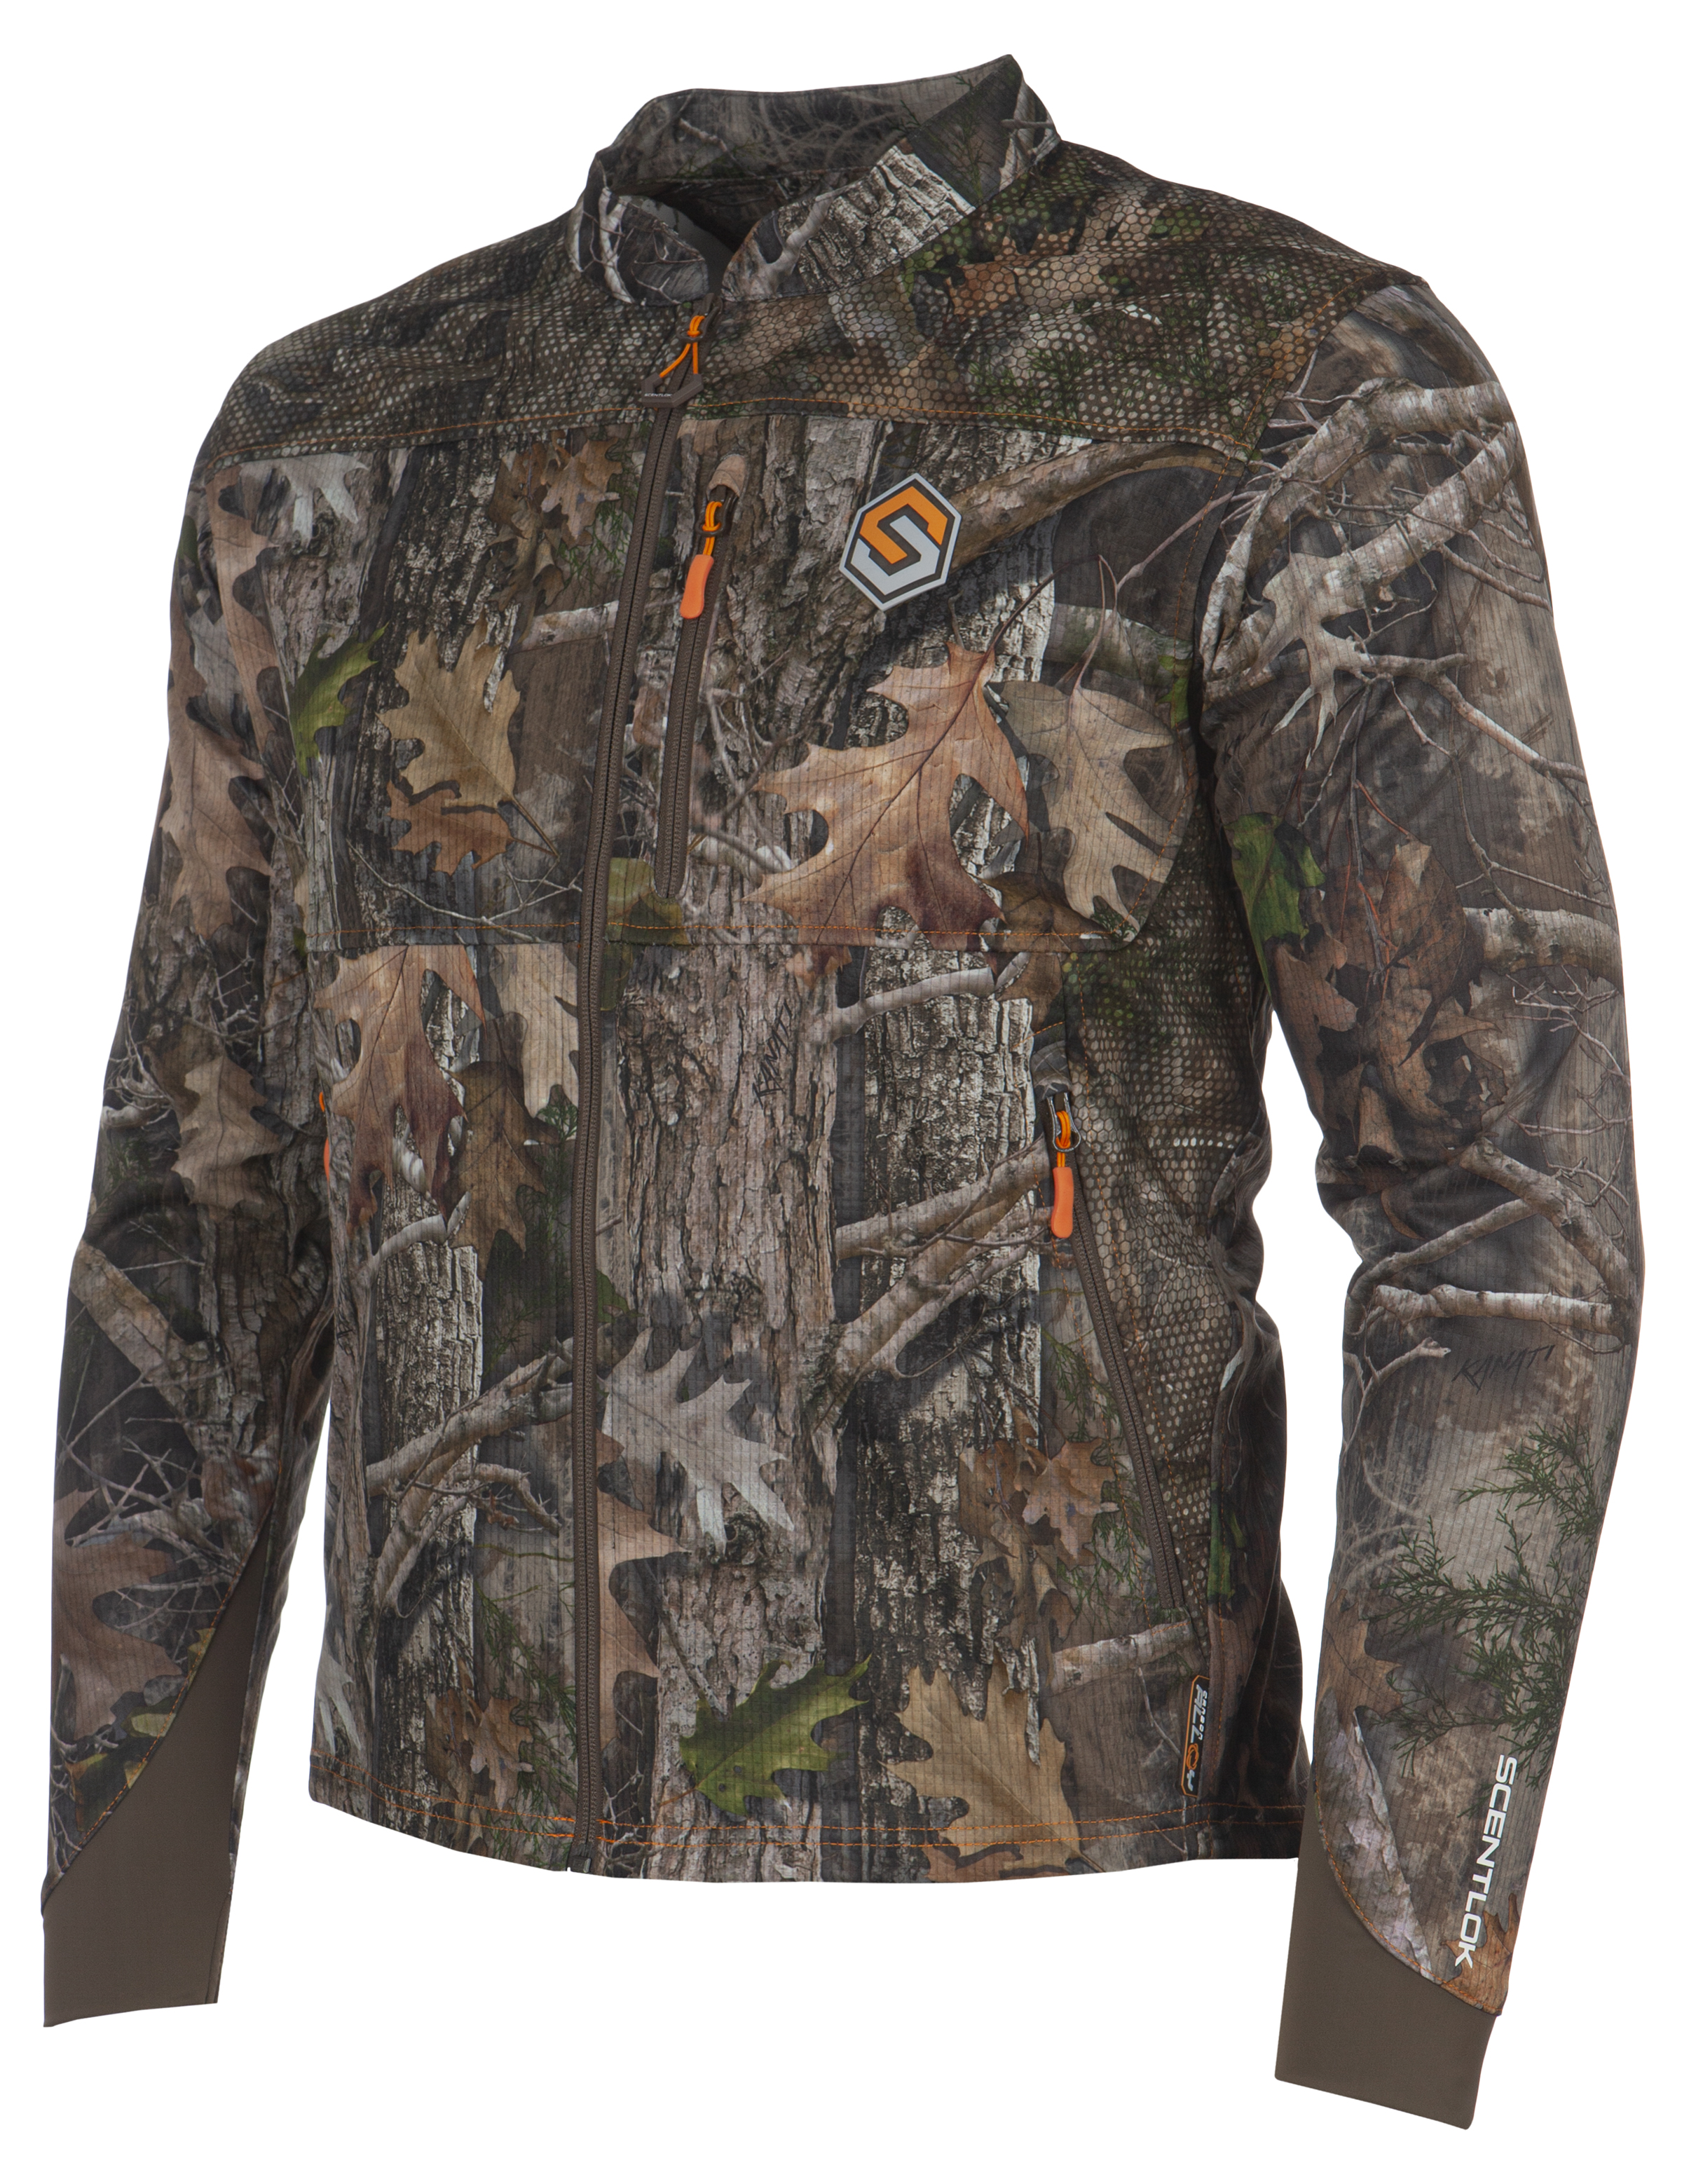 1016110-080-Savanna_AERO_Crosshair_Jacket_Angled